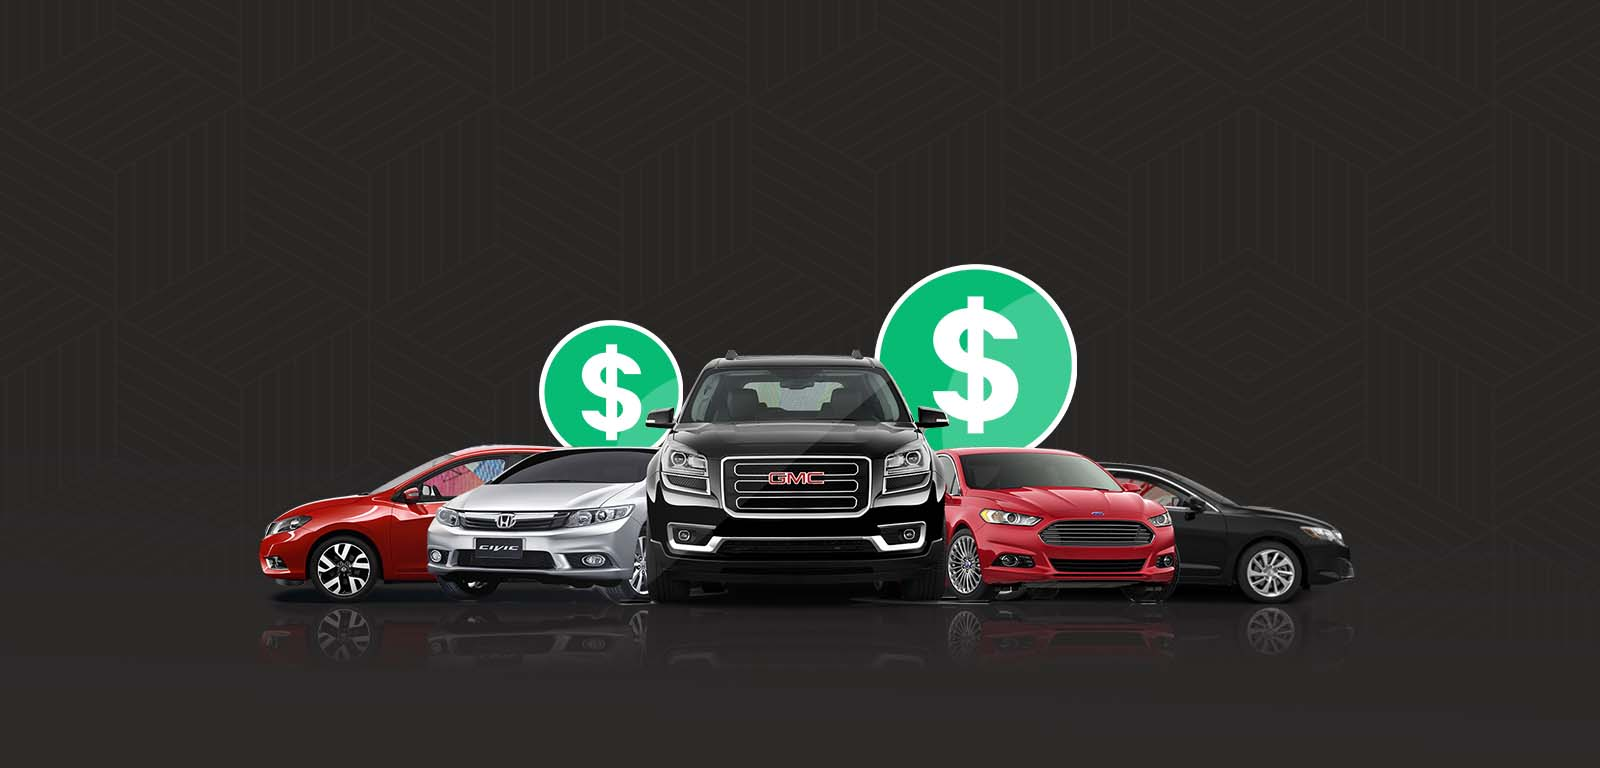 Cash for Cars Removal in Sunshine Coast, Caboolture, Gympie, Maryborough,  Hervey Bay QLD